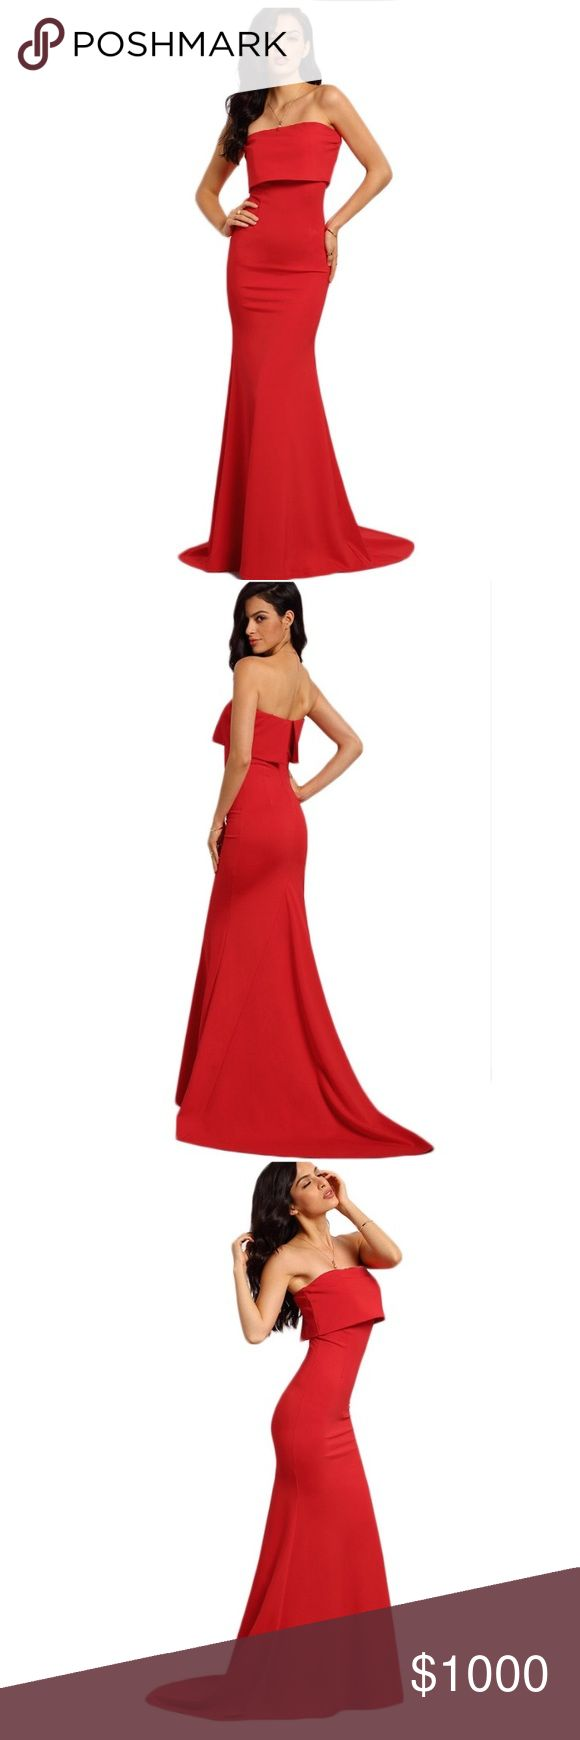 🎉COMING SOON🎉 Sexy Red Strapless Maxi Dresses Elegant Sexy Red Strapless Maxi Dress. Dresses Strapless